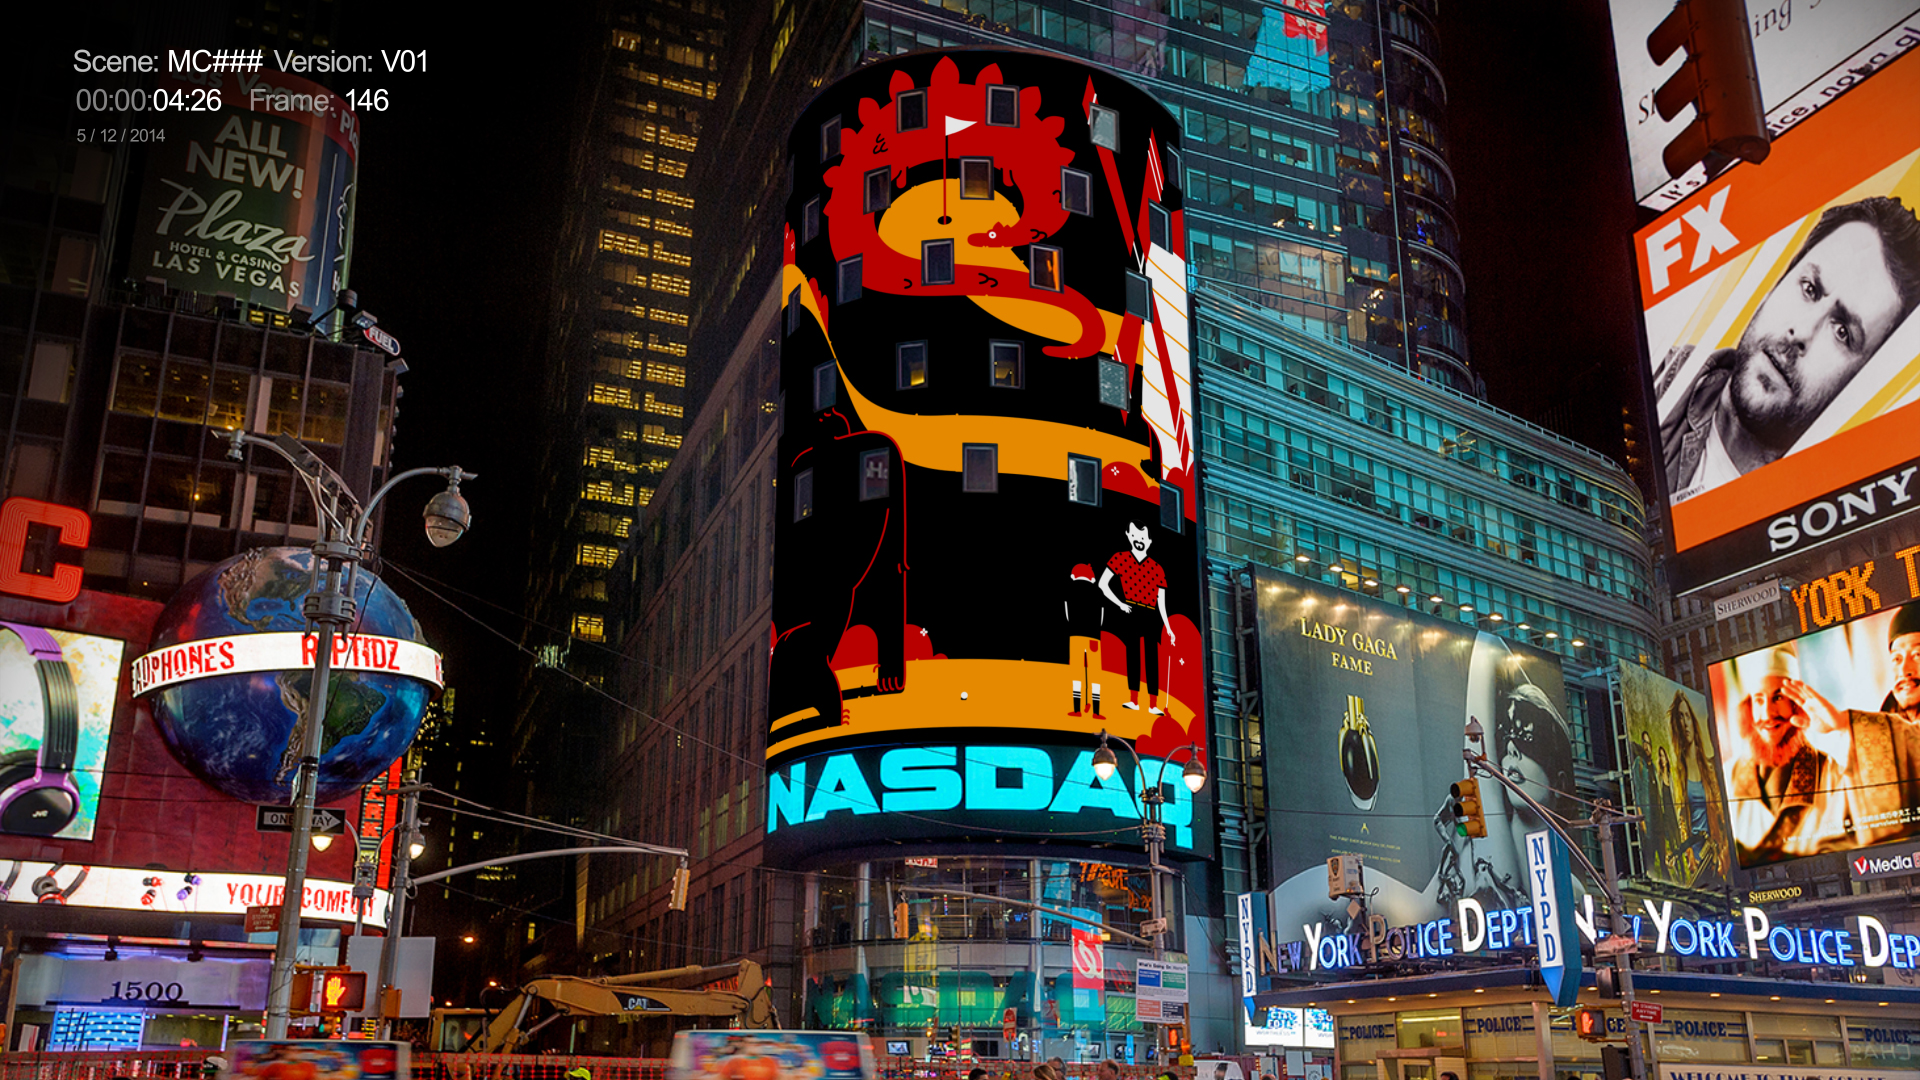 Mastercard Time Square   Addtl. Direction / Design / A.D. by Thomas Schmidt